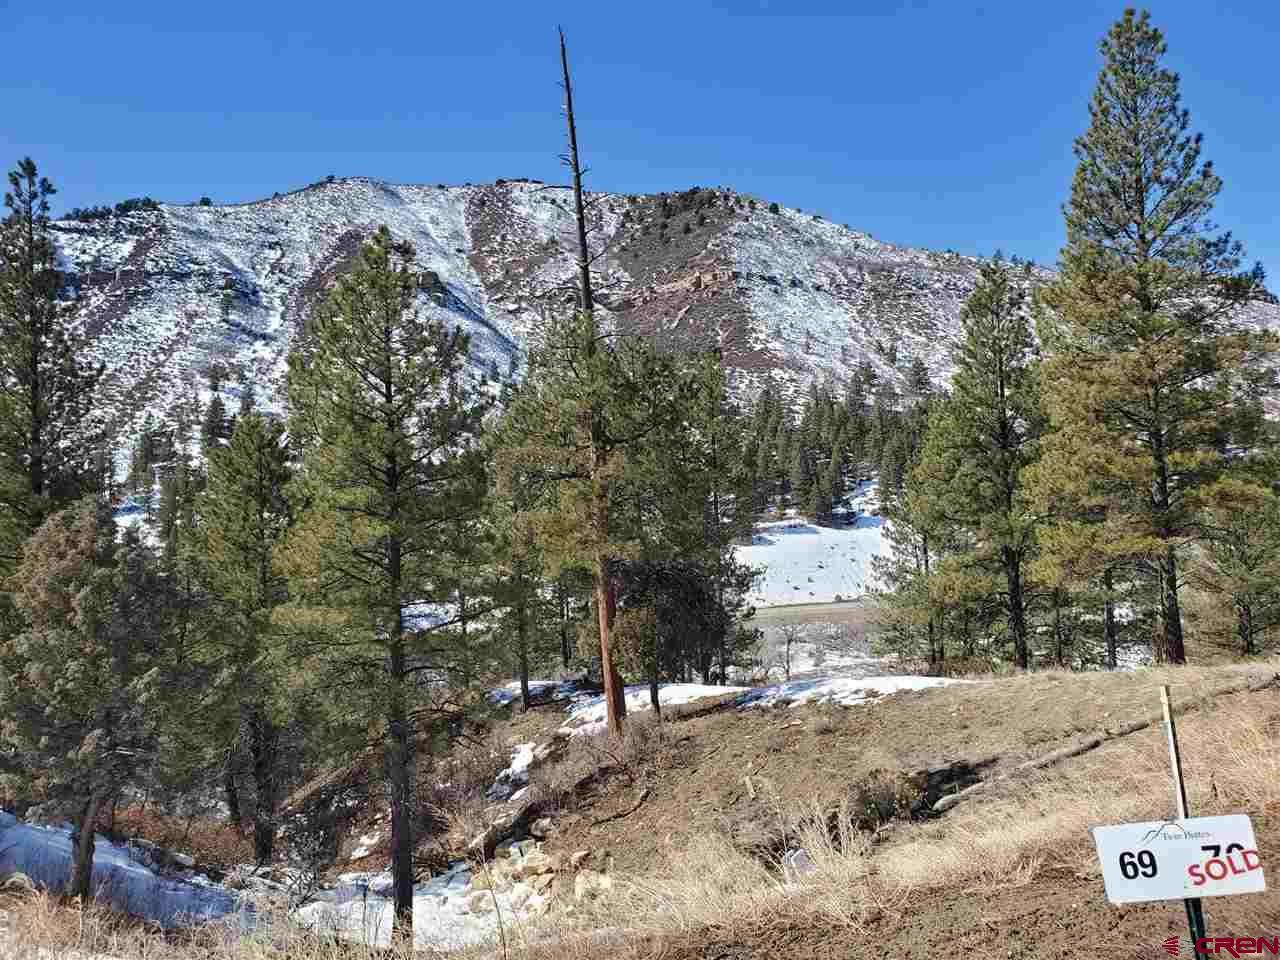 Photo of (Lot 69) 59 Arnica Court, Durango, CO 81301 (MLS # 751208)